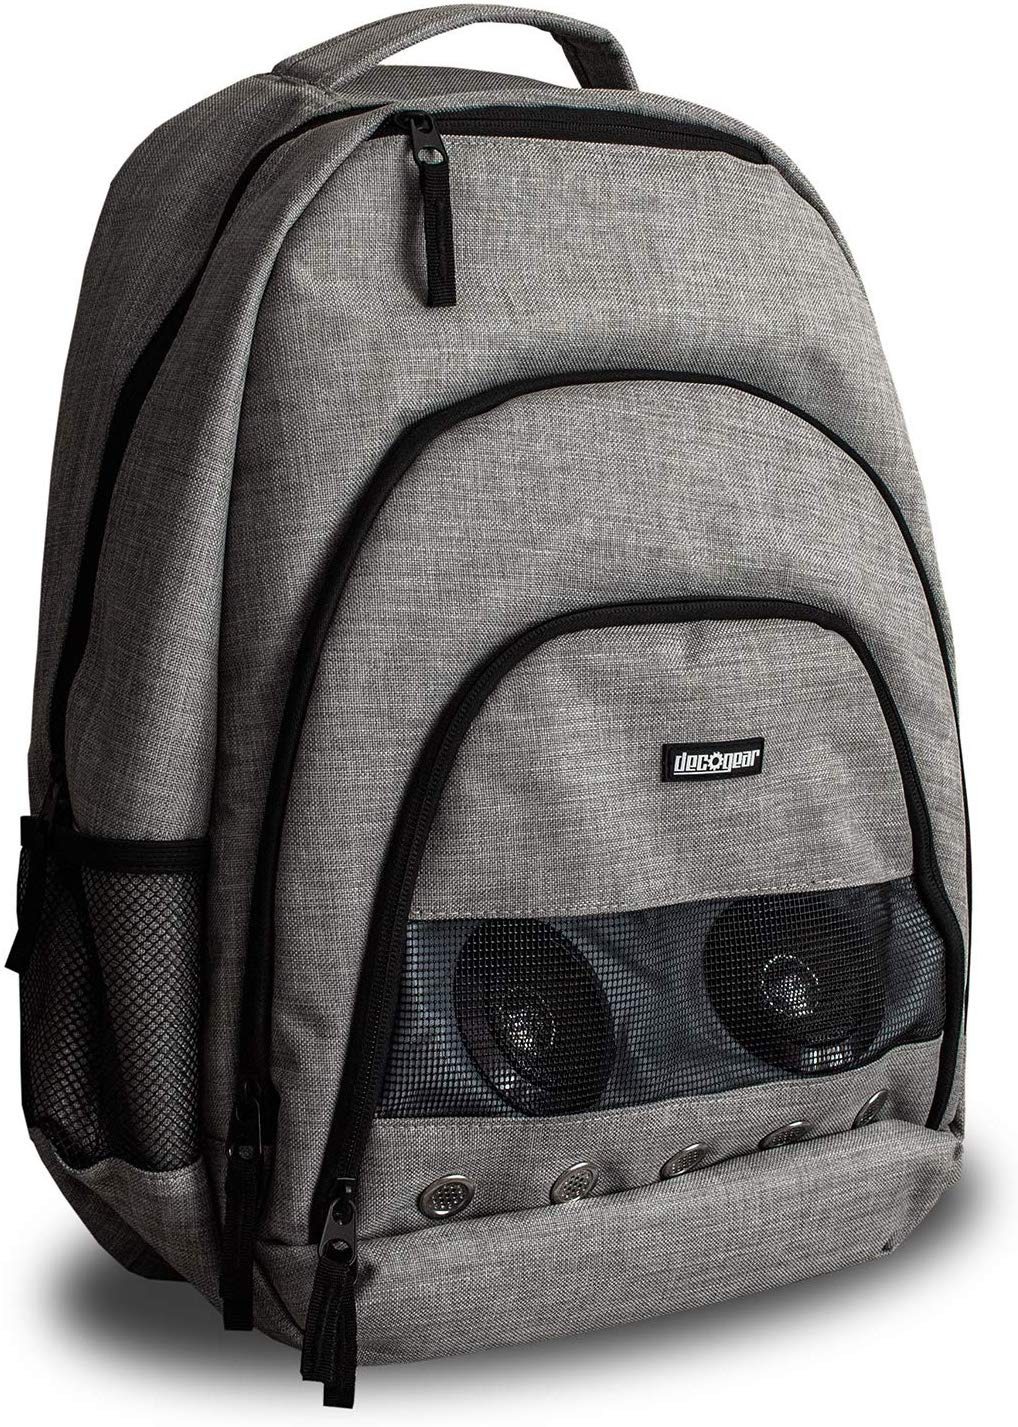 Deco Gear Bluetooth Speaker Backpack with Power Bank